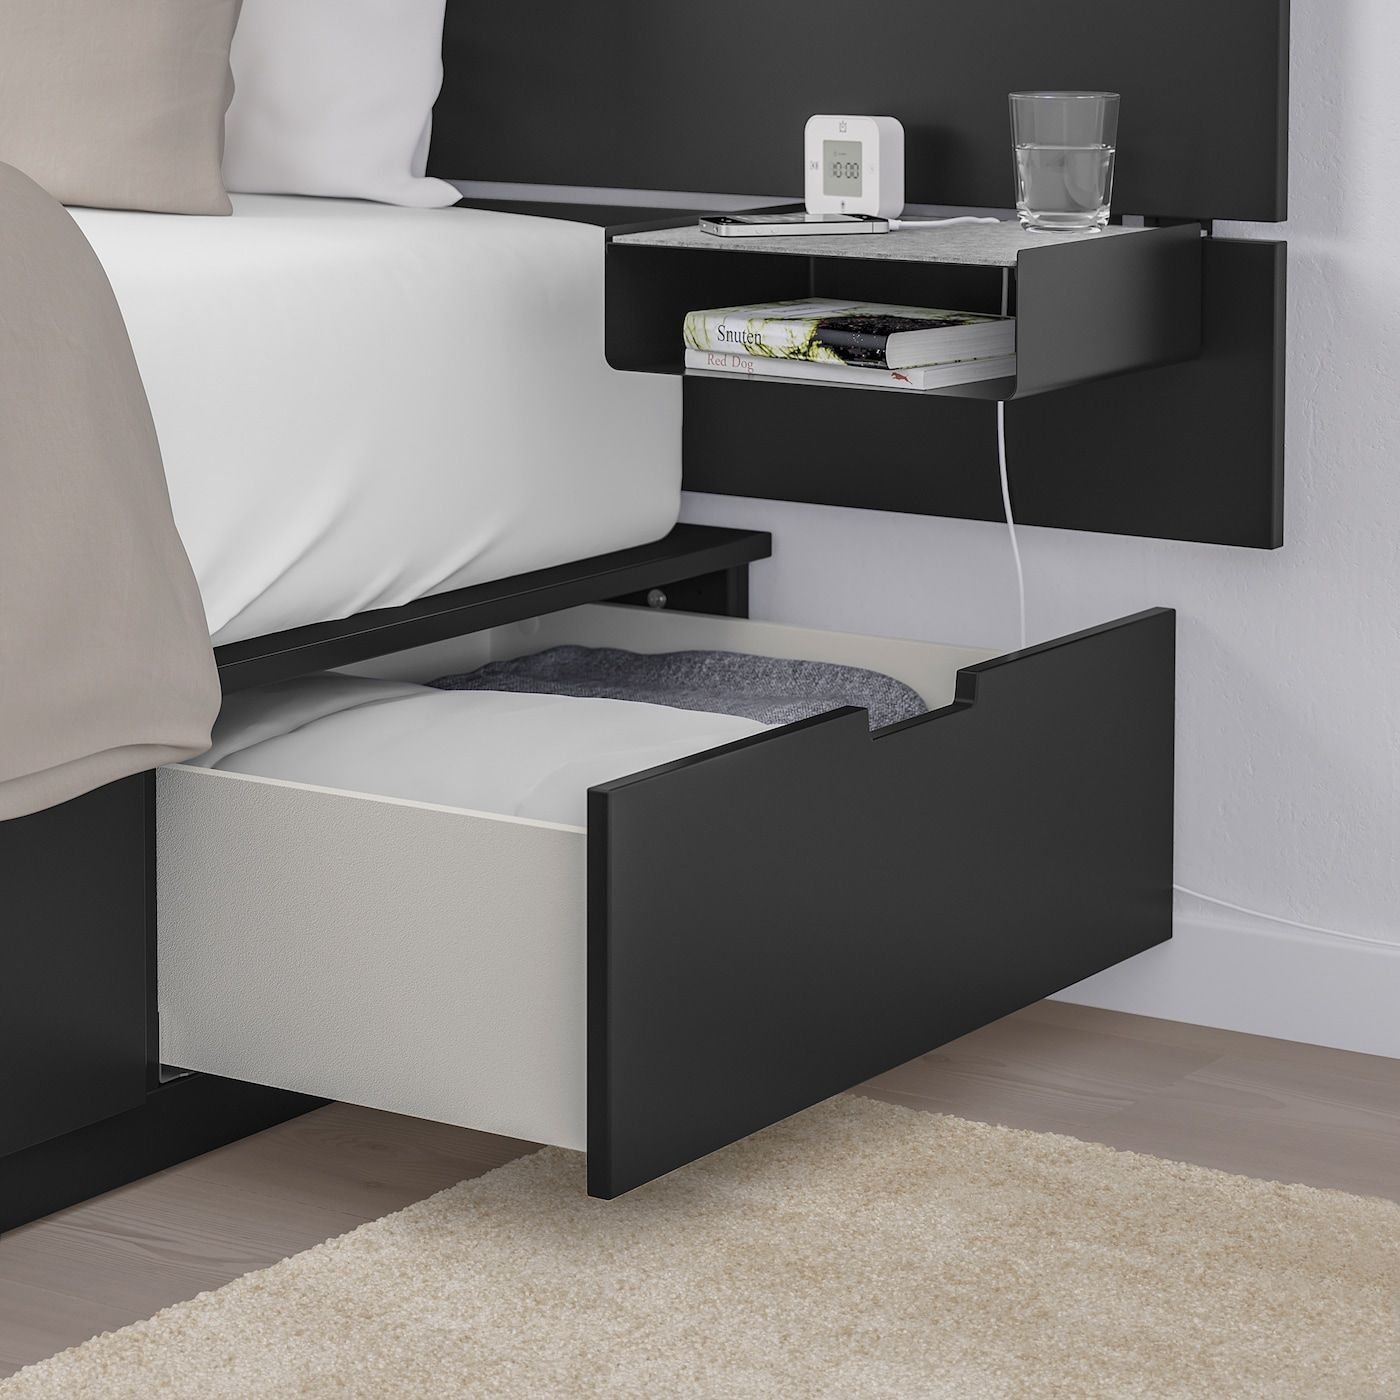 Nordli Bed With Headboard And Storage Anthracite Queen In 2020 Headboards For Beds Headboard Storage Bed Frame